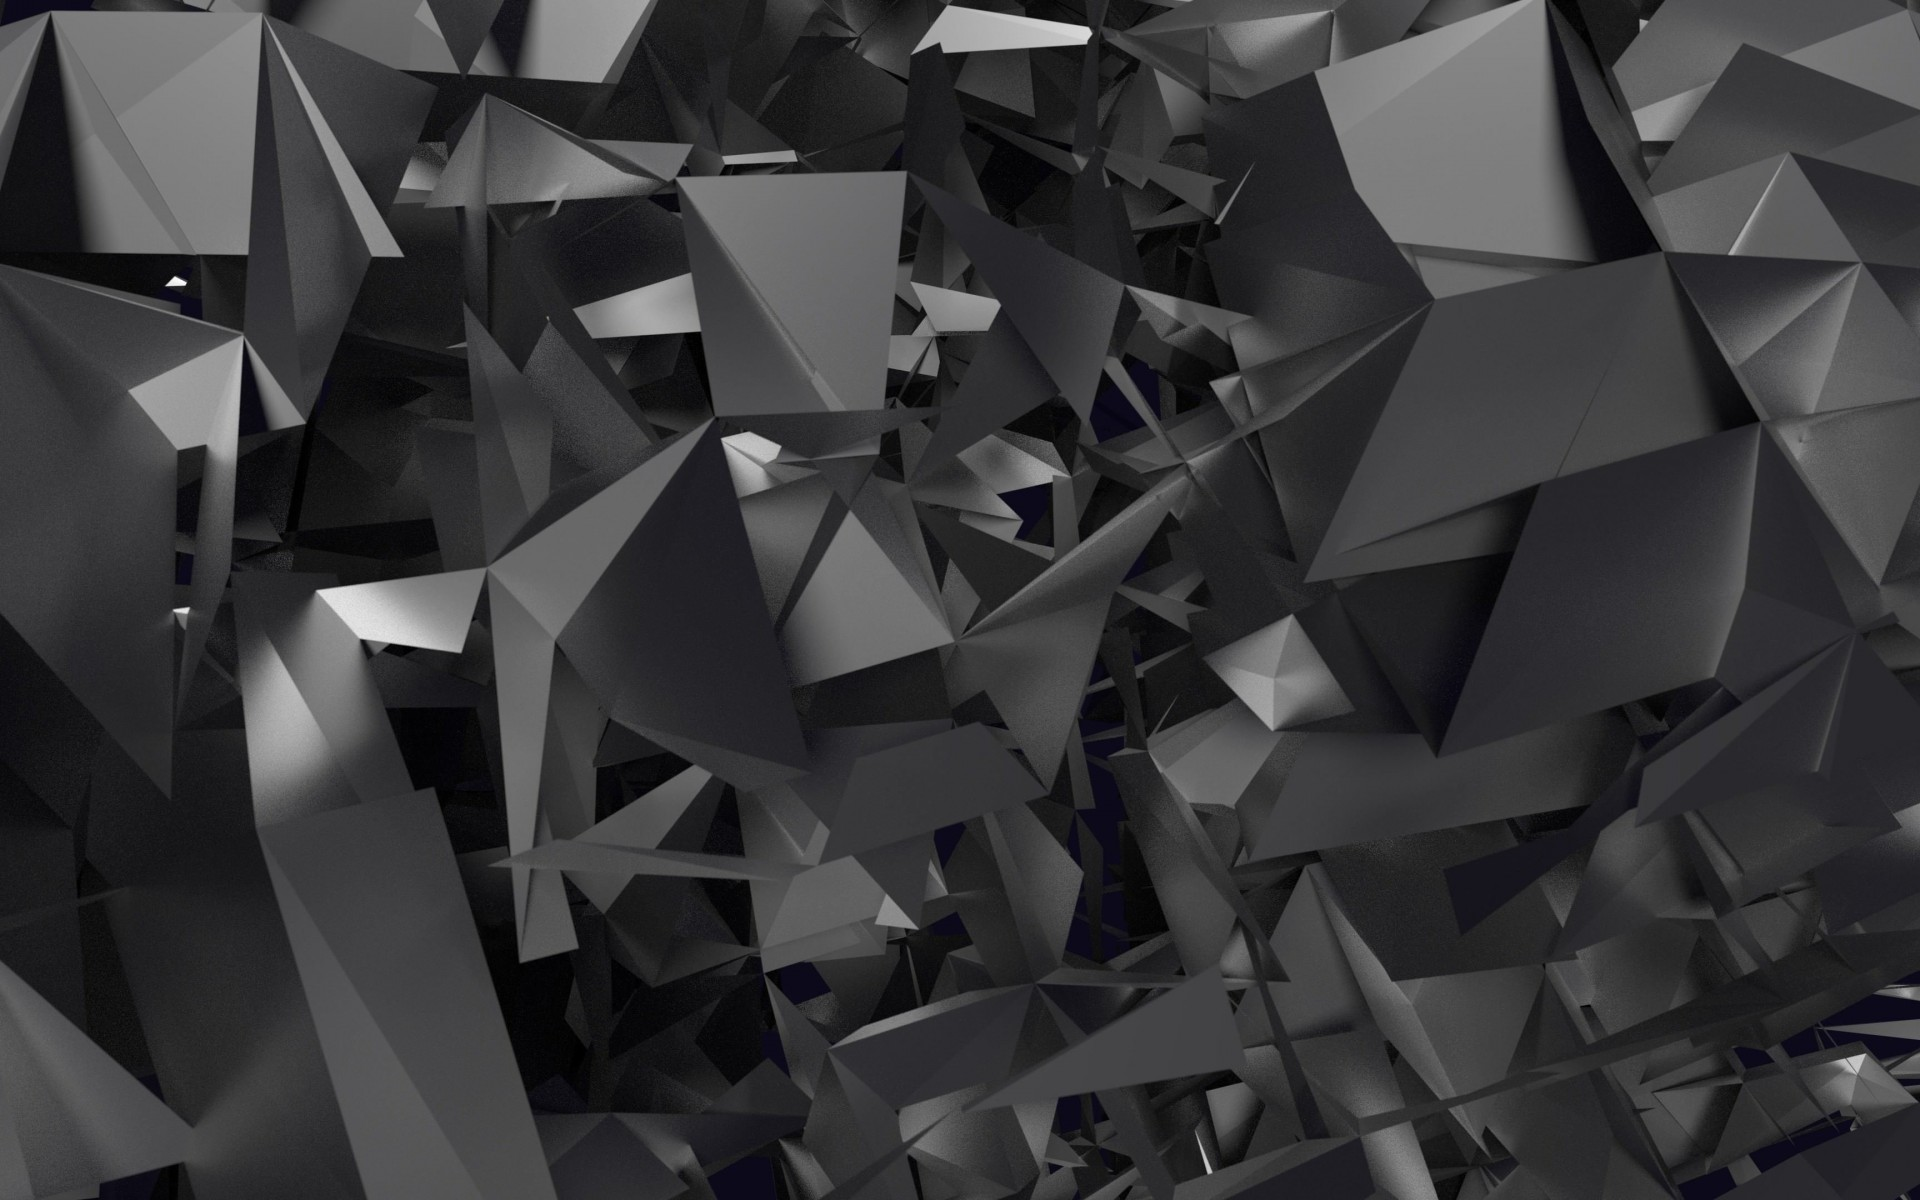 3D Geometry Wallpaper for Desktop 1920x1200